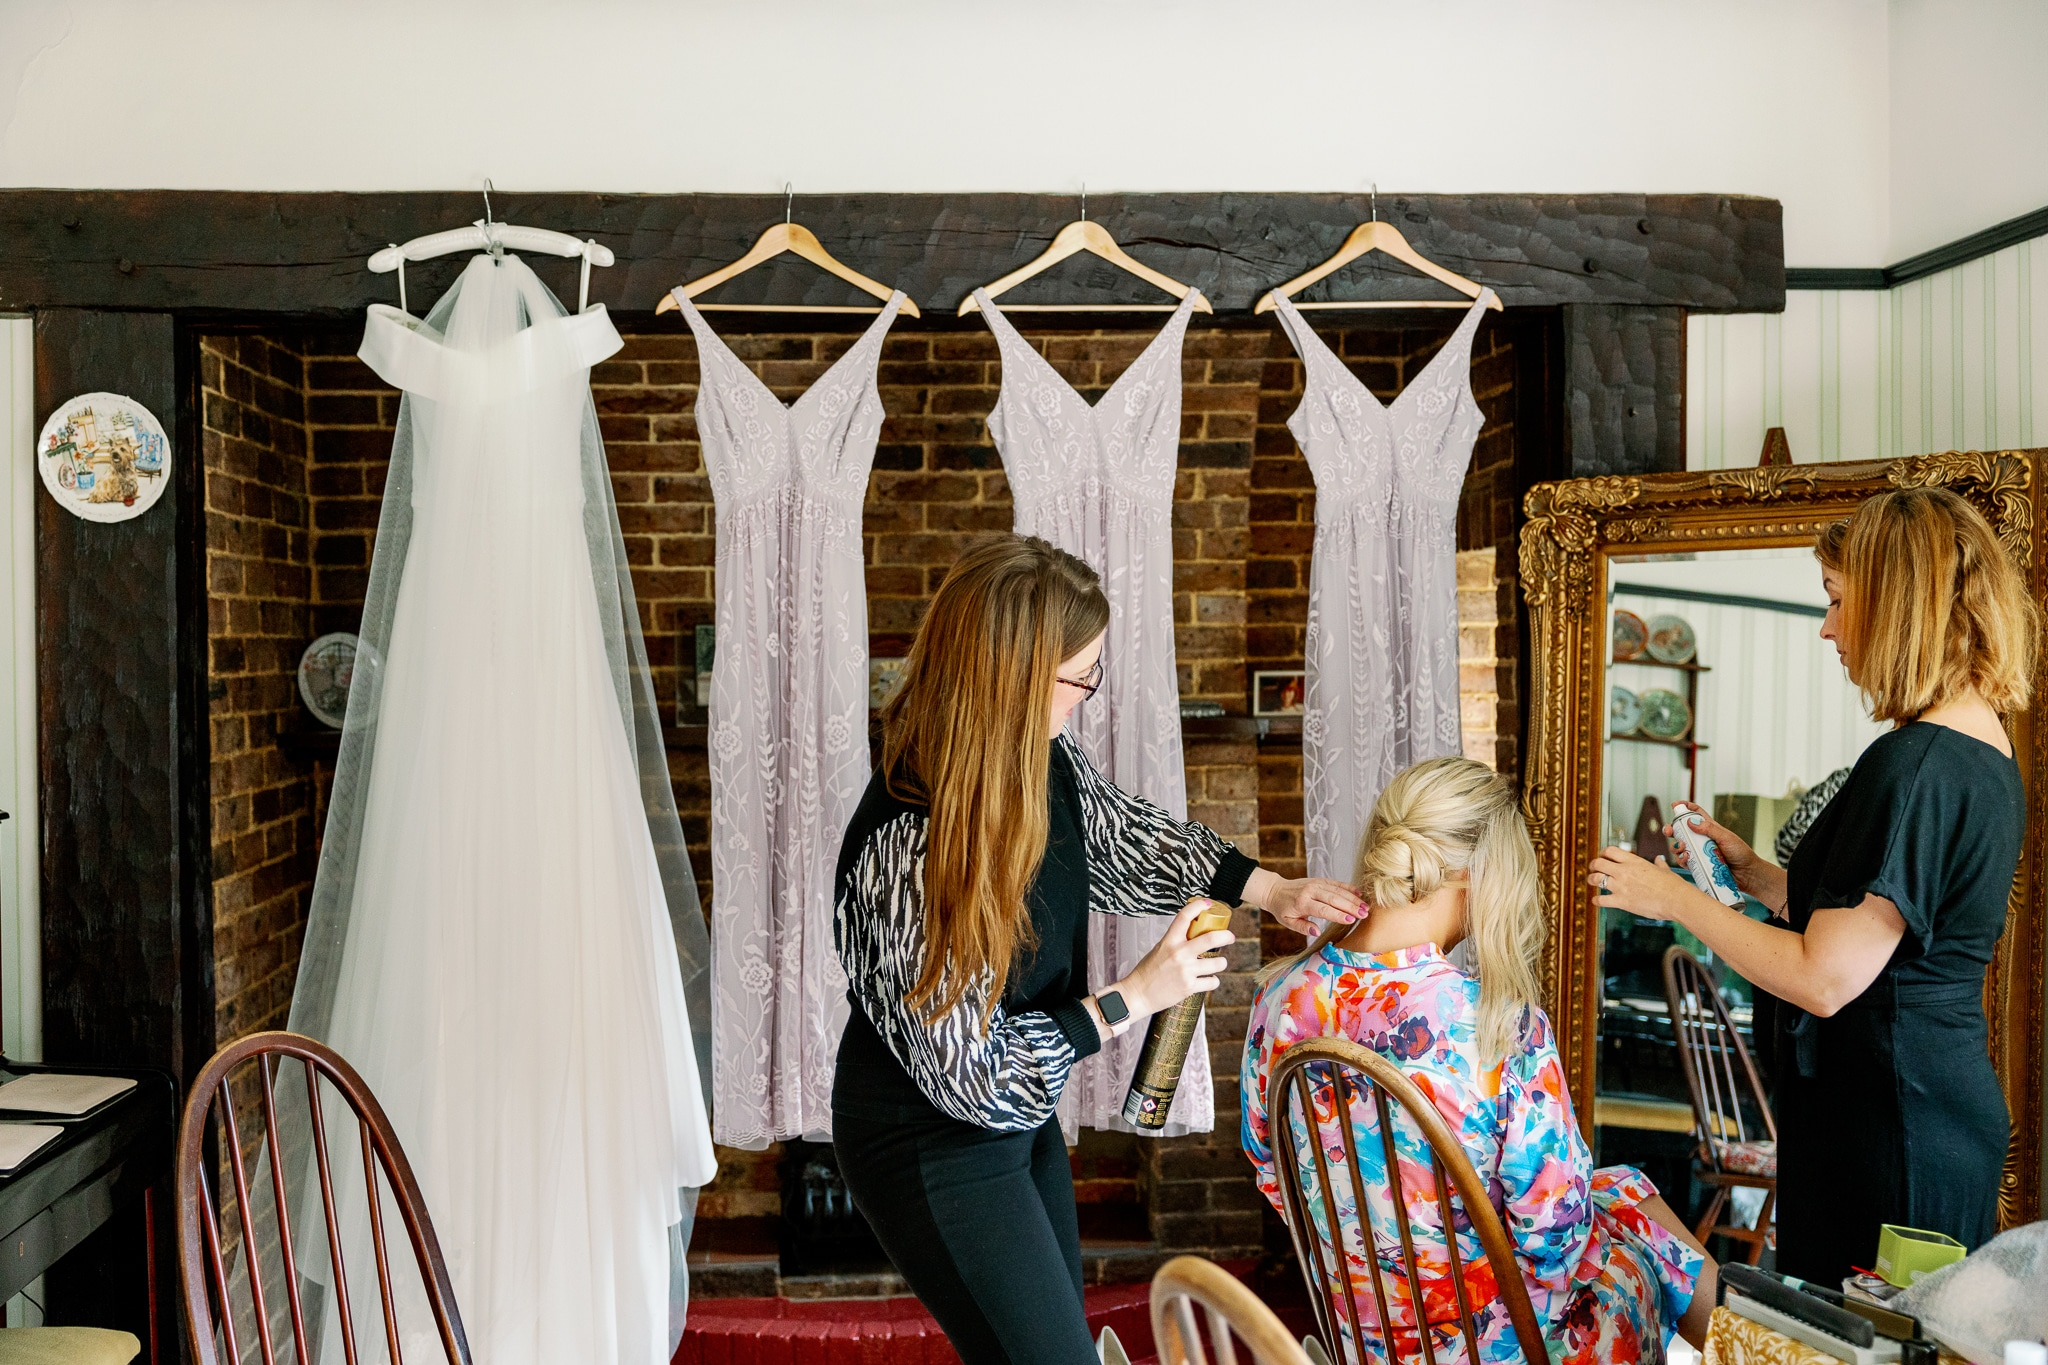 Bexhill-on-sea wedding photography of bride getting ready